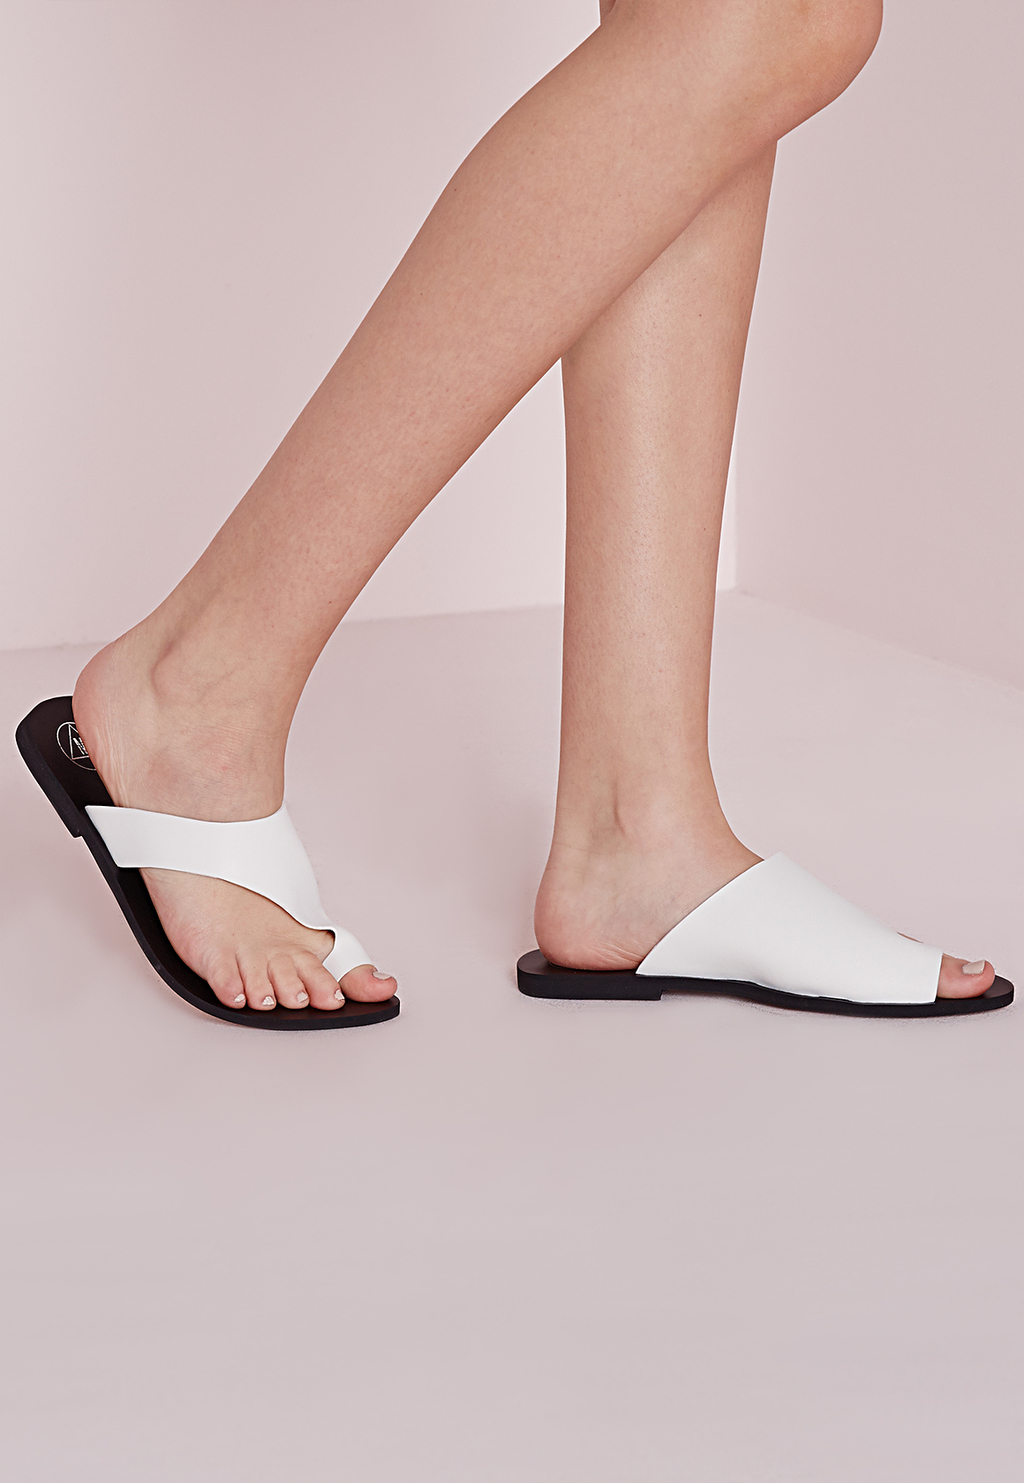 Asymmetric Toe Flat Sandals White, White - predominant colour: white; material: faux leather; heel height: flat; heel: standard; toe: toe thongs; style: flip flops; occasions: holiday; finish: plain; pattern: plain; season: s/s 2016; wardrobe: highlight